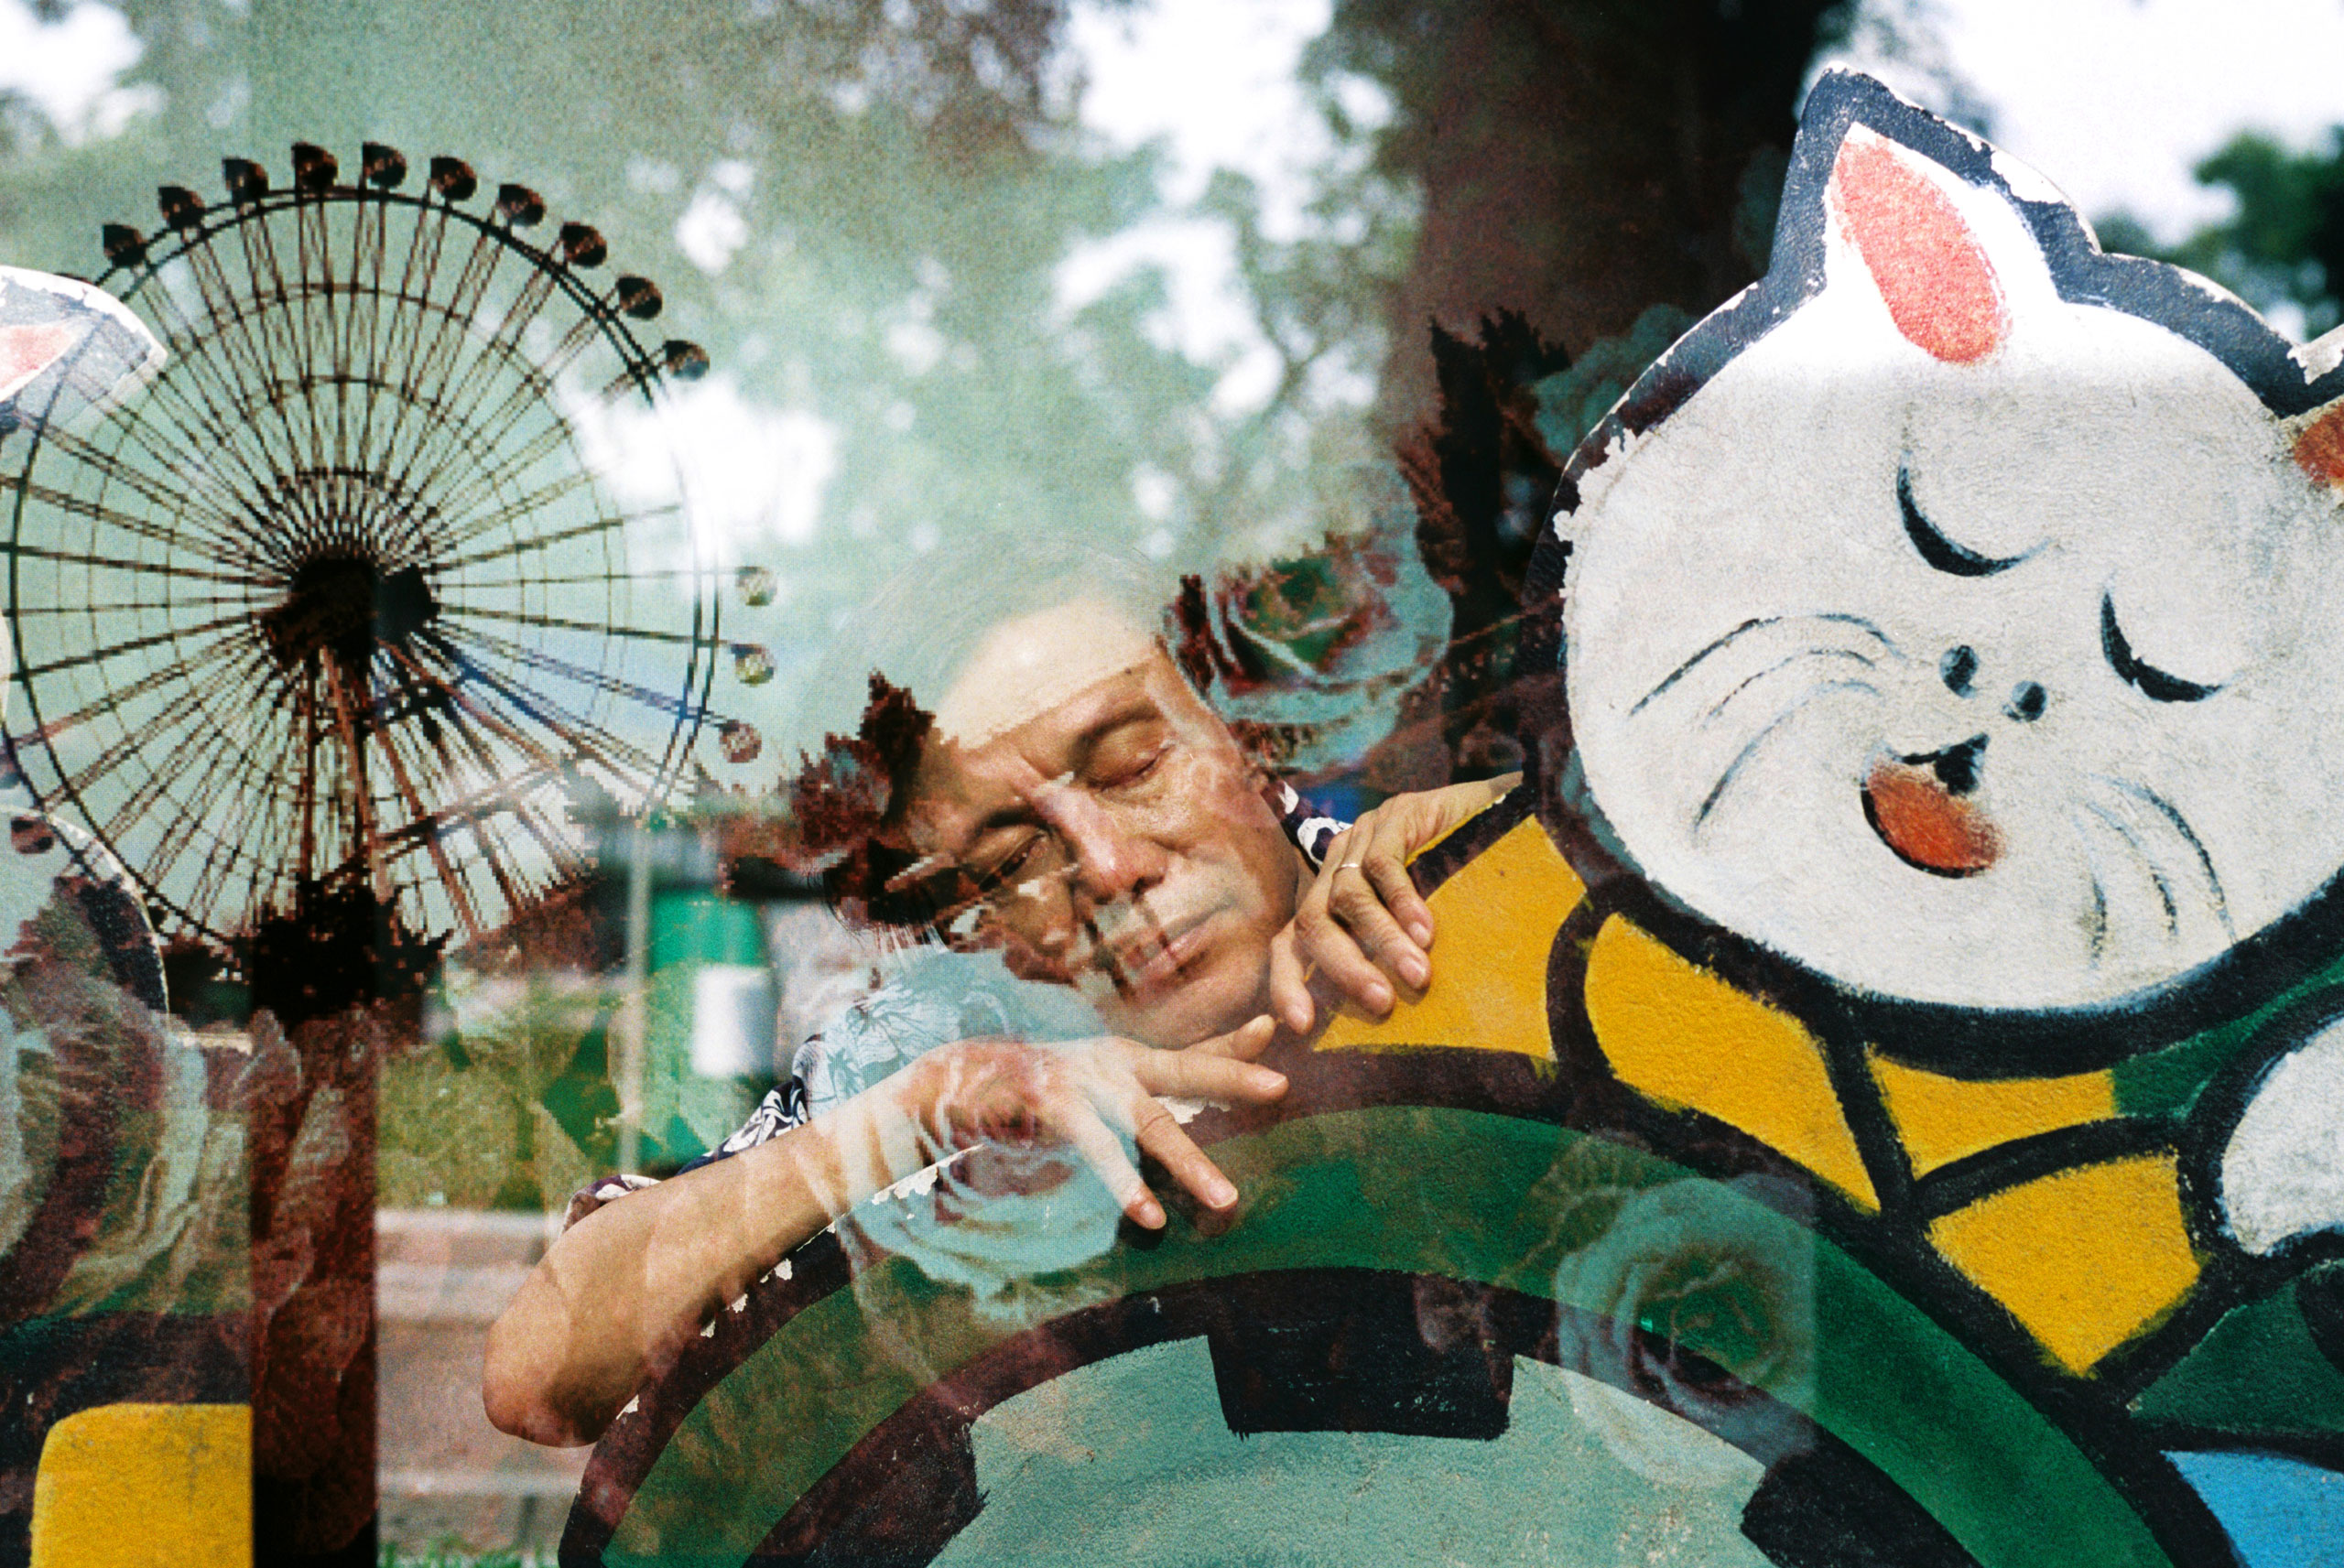 An image of my father resting on a cardboard in Lenin Park, overlaid by an image of an ferris wheel at the water park of Hanoi, August, 2013.